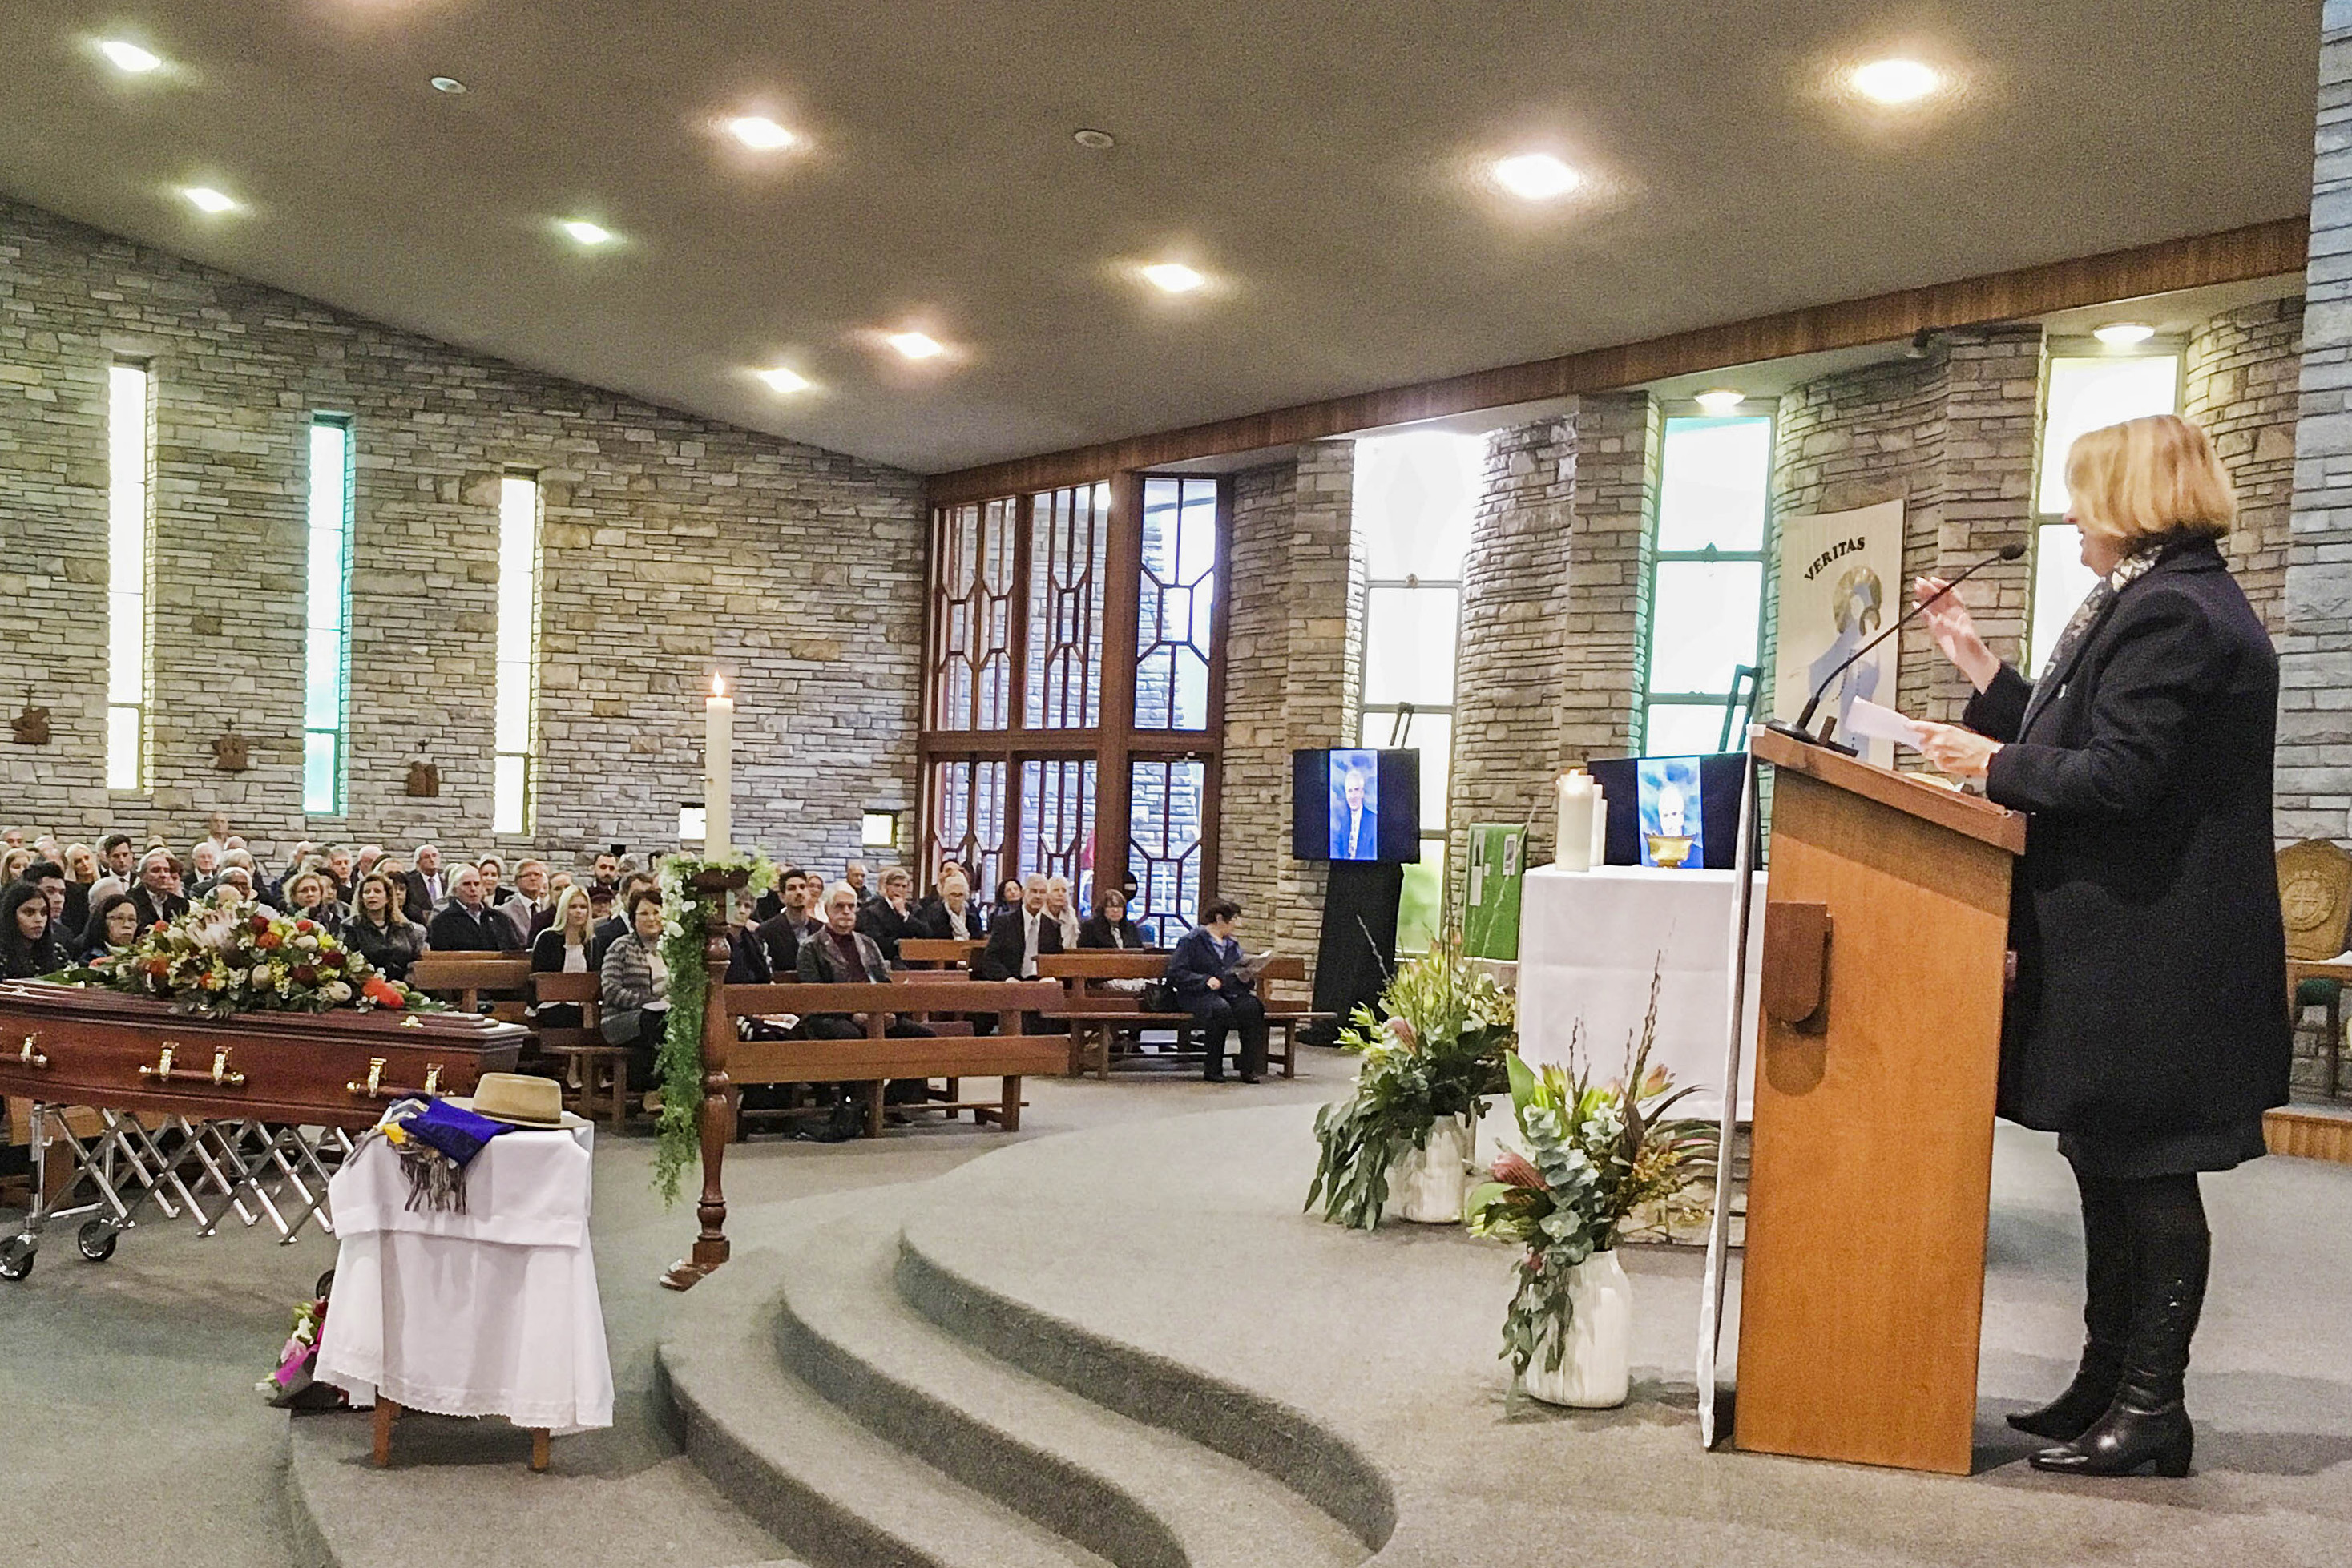 Police Minister Michelle Roberts delivers the parliamentary eulogy for John Kobelke at Our Lady of the Rosary Church, Doubleview Parish. Photo: Supplied.